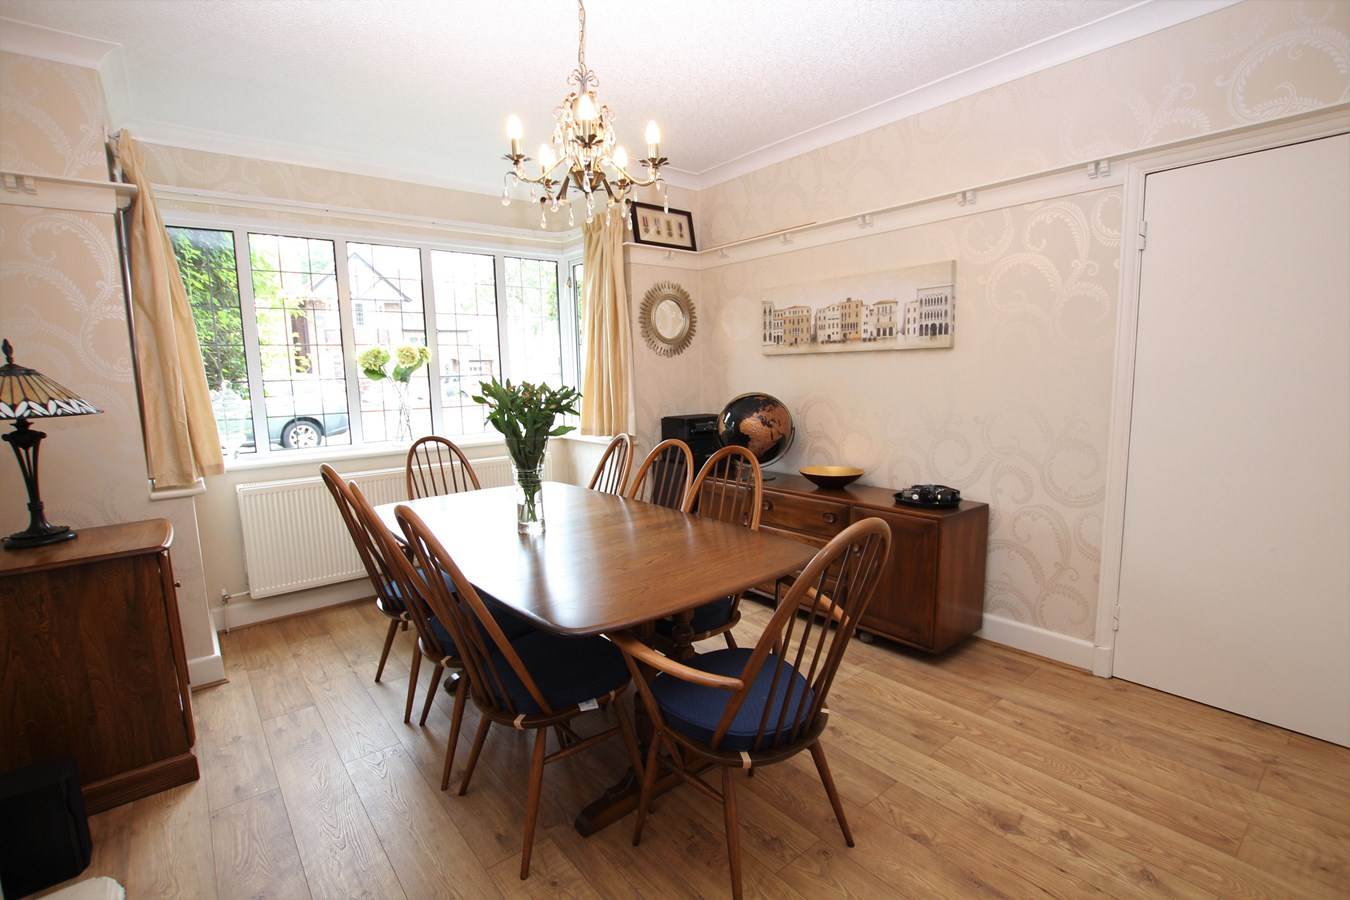 4 Bedroom Detached House For Sale In Walsall